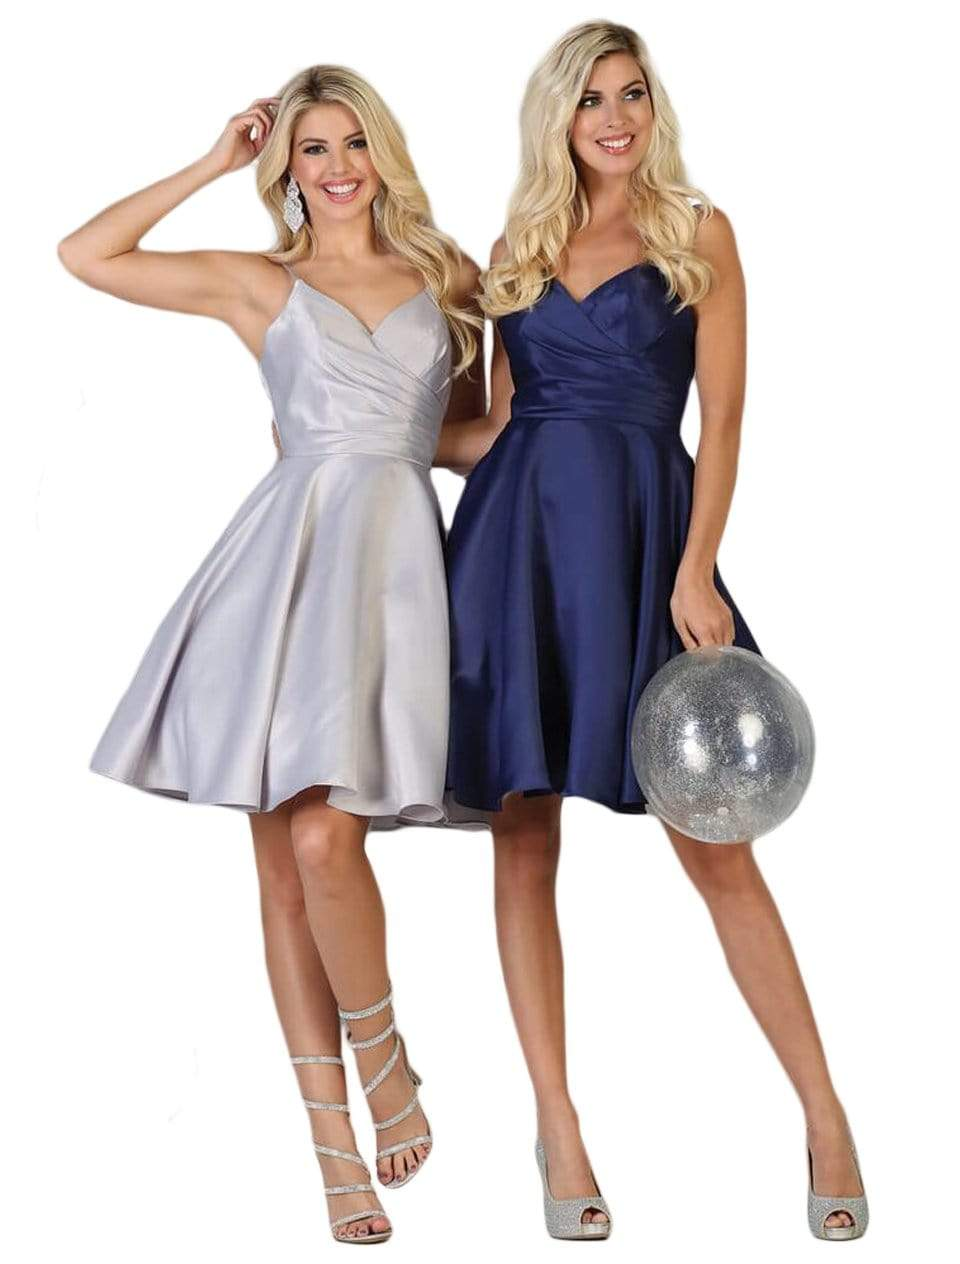 May Queen - MQ1654 V Neck Sleeveless Fit and Flare Short Dress In Silver and Blue